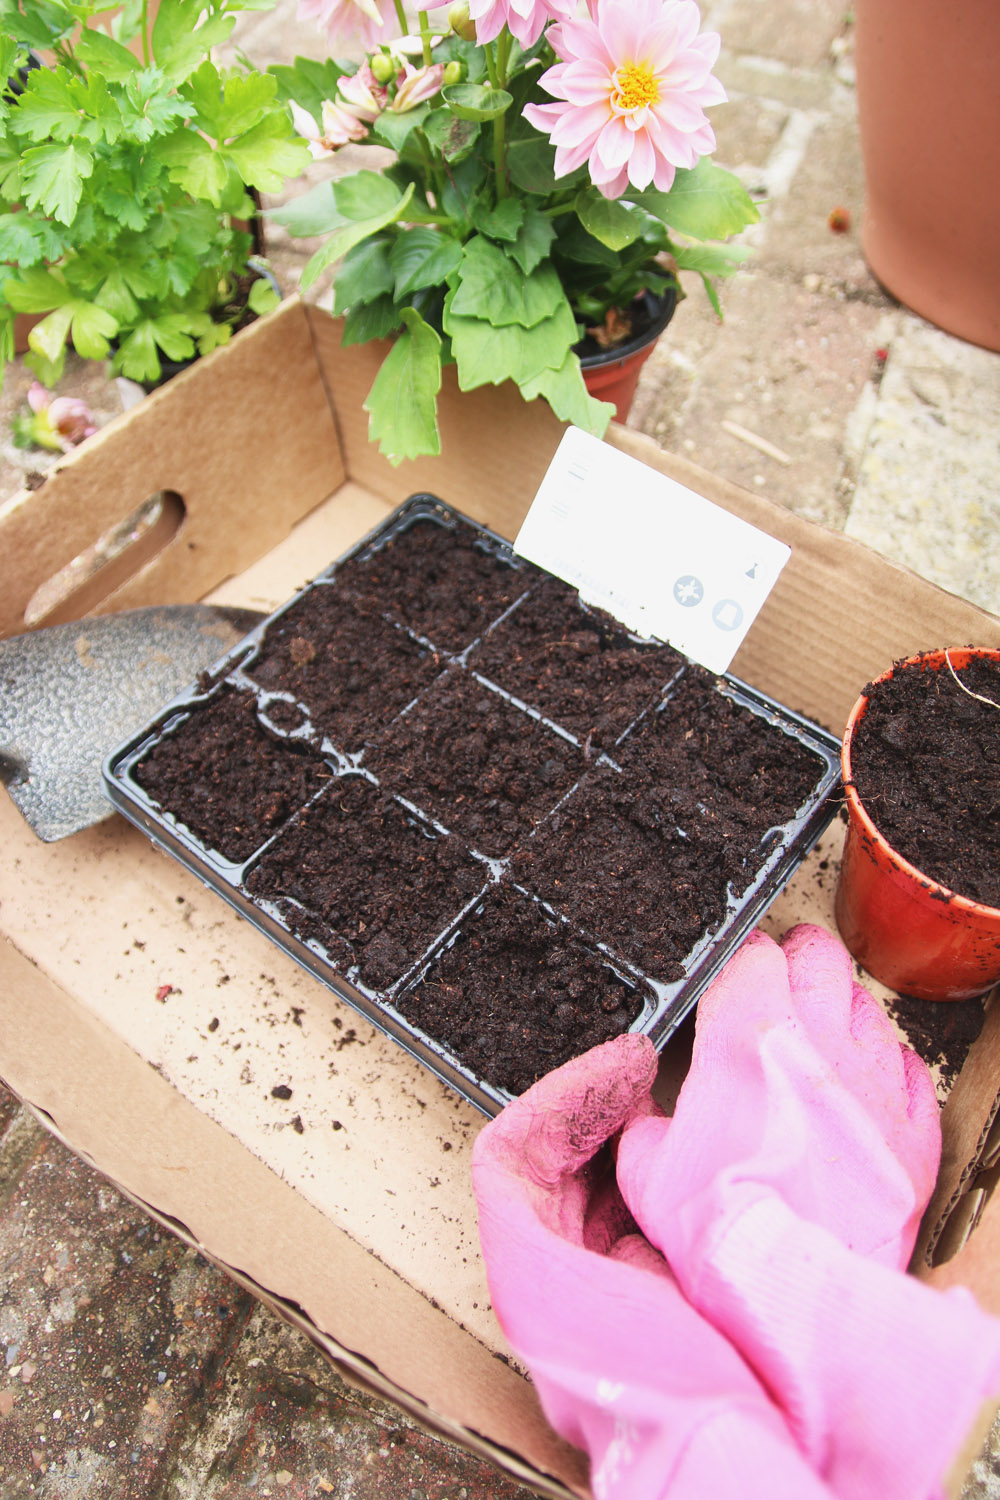 Vegetable Garden - Sowing Seeds